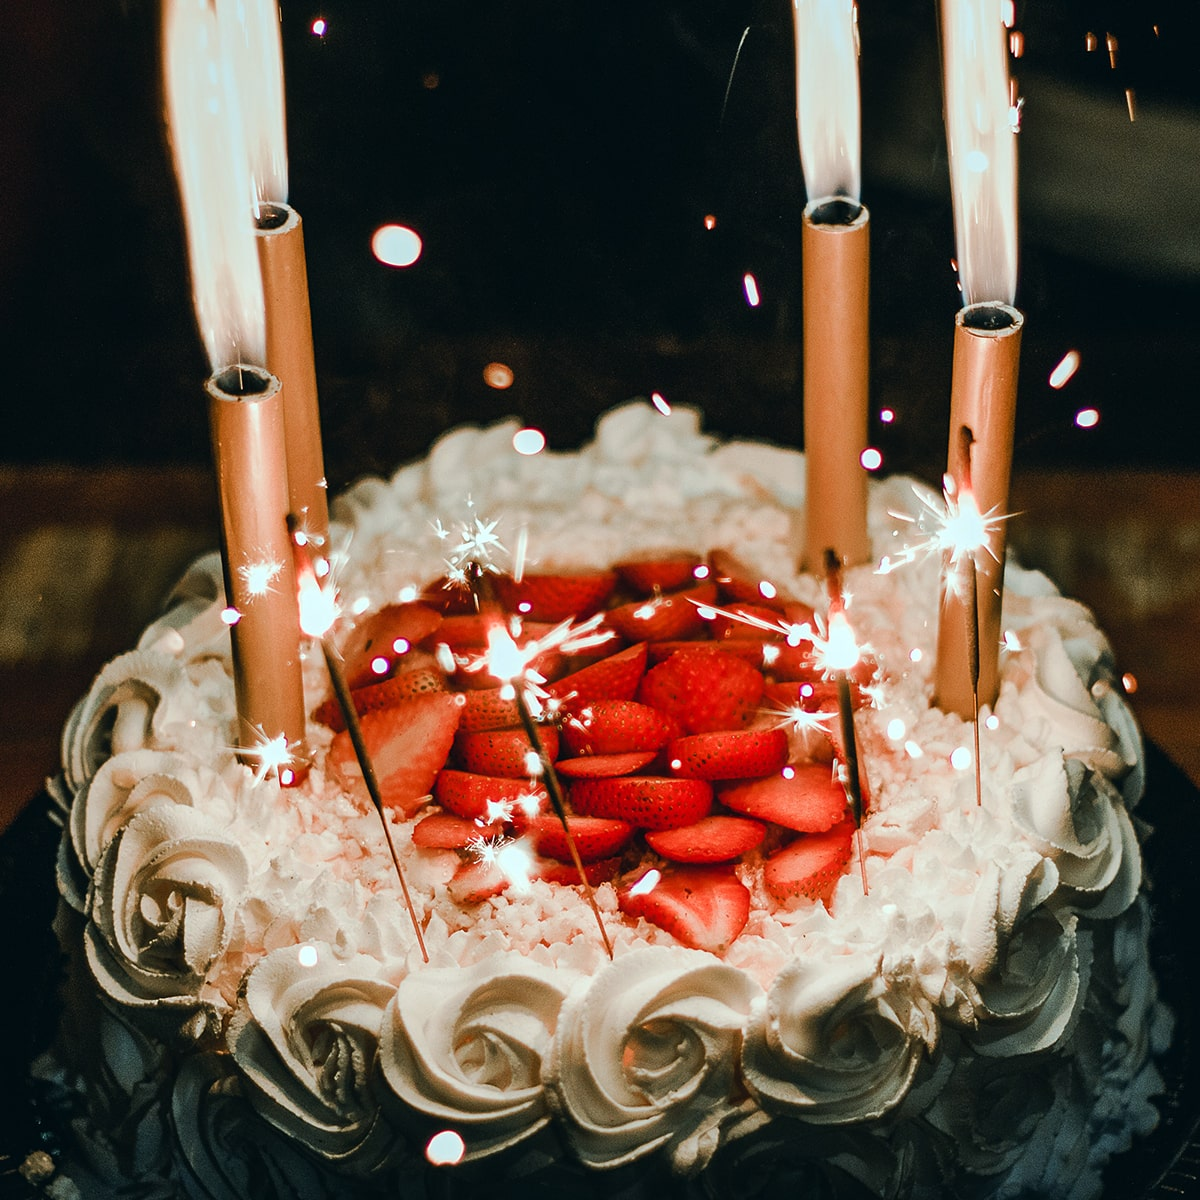 Image of an Anniversary Cake with Sparklers on Top